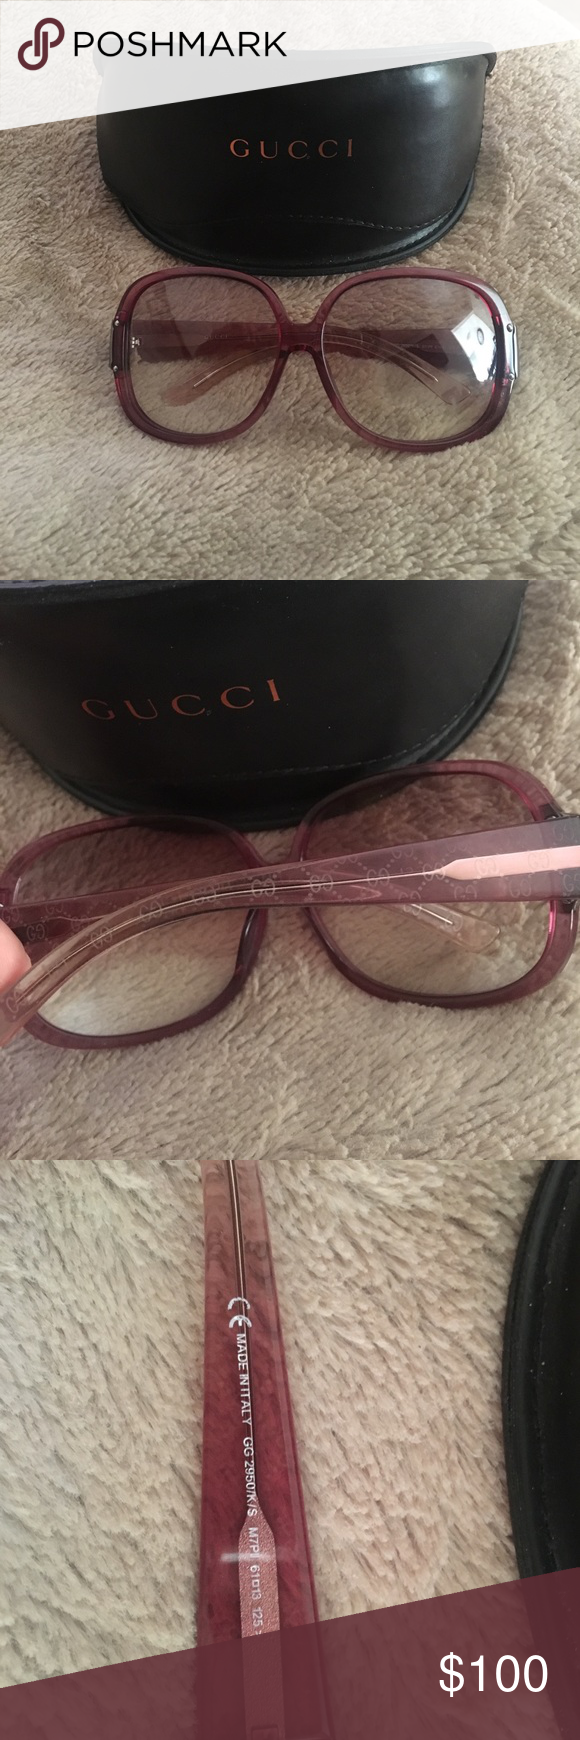 Gucci sunglasses Gucci sunglasses a couple minor scratches but not noticeable comes with box and cleaning cloth still in great condition. Gucci Accessories Glasses